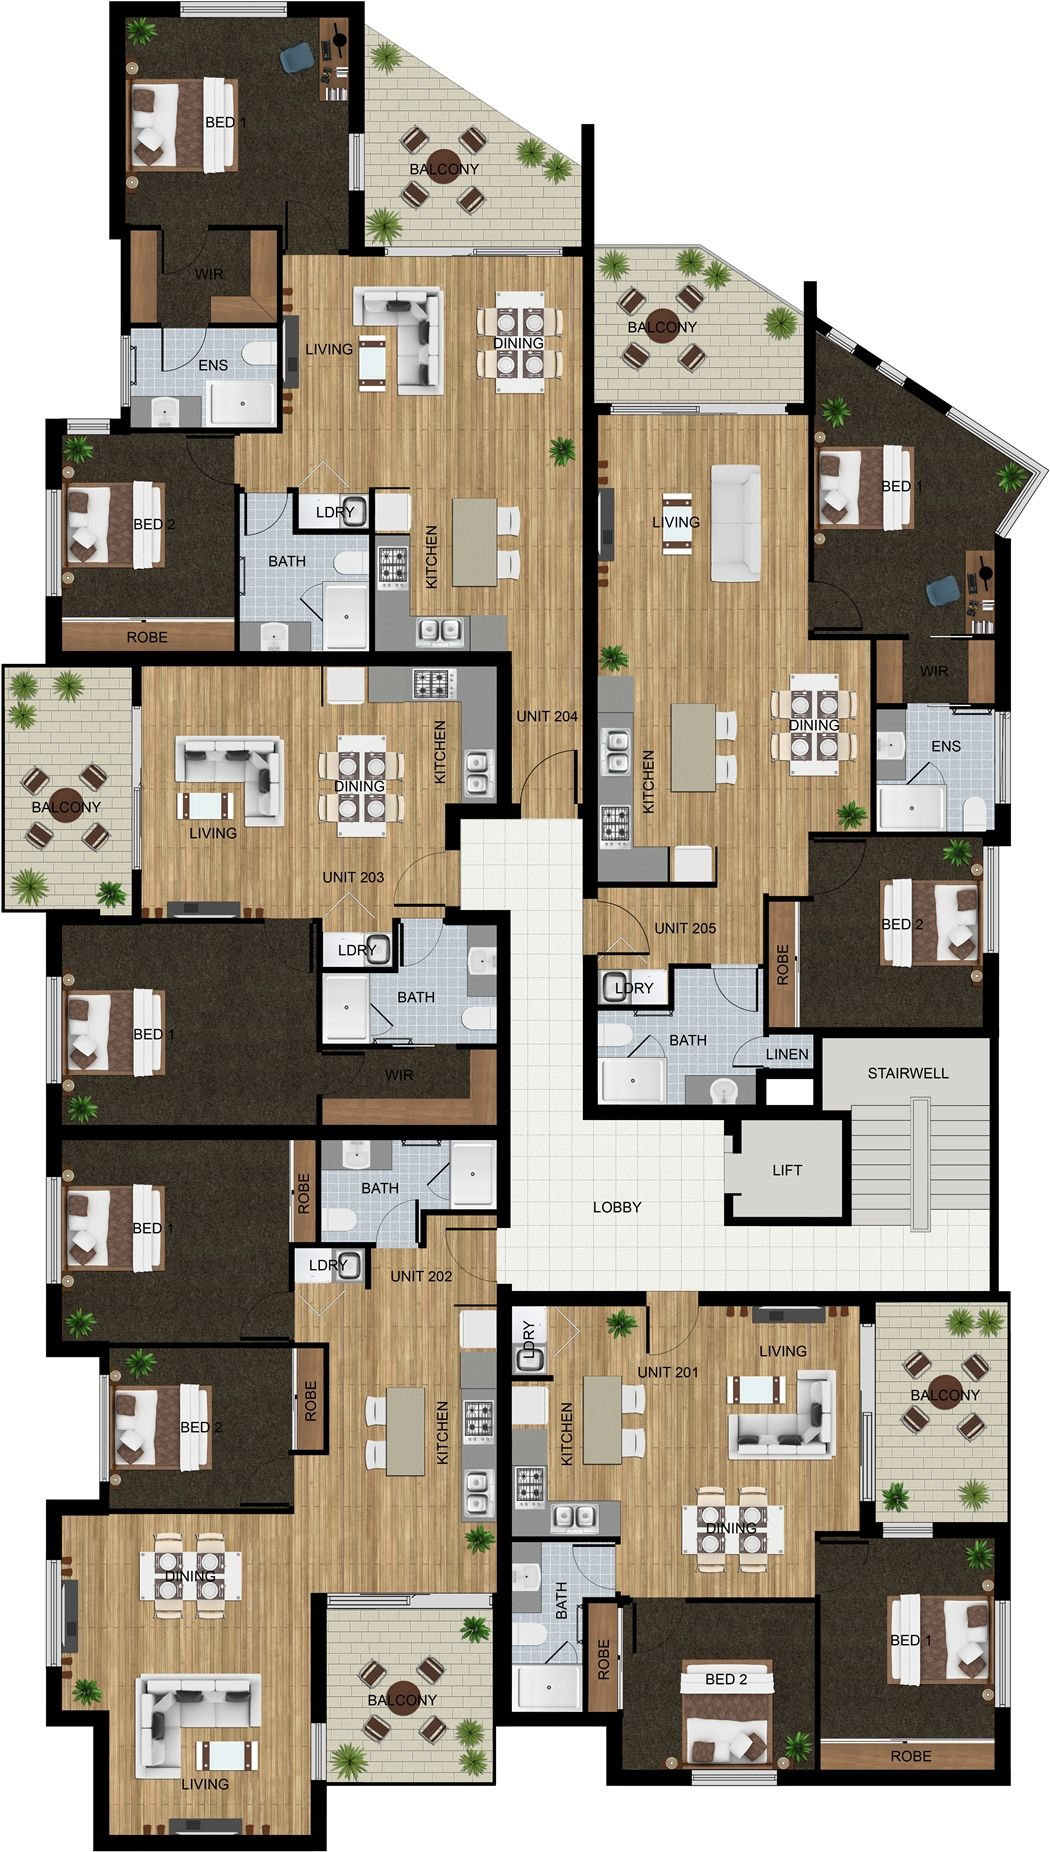 2D floor plan for amulti unit development